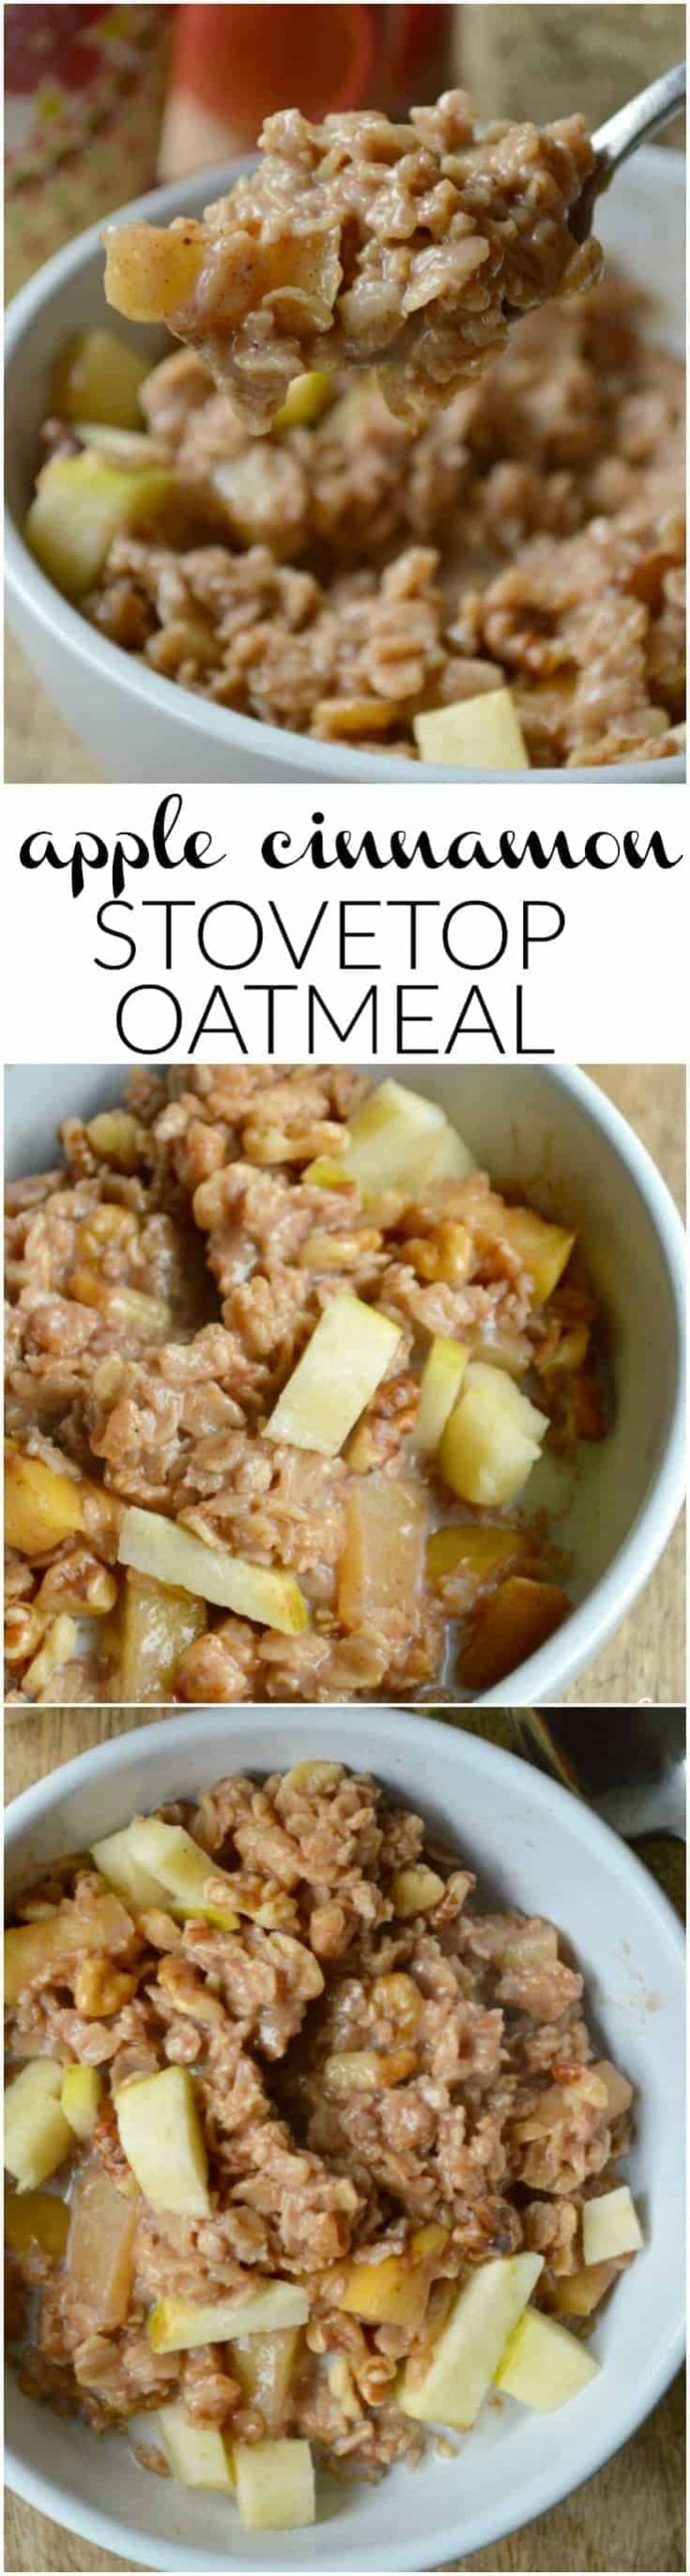 If you love apple pie or apple crumble, you'll LOVE this Apple Cinnamon Stovetop Oatmeal! Warm, cozy, and loaded with cooked apples plus all the delicious spices.